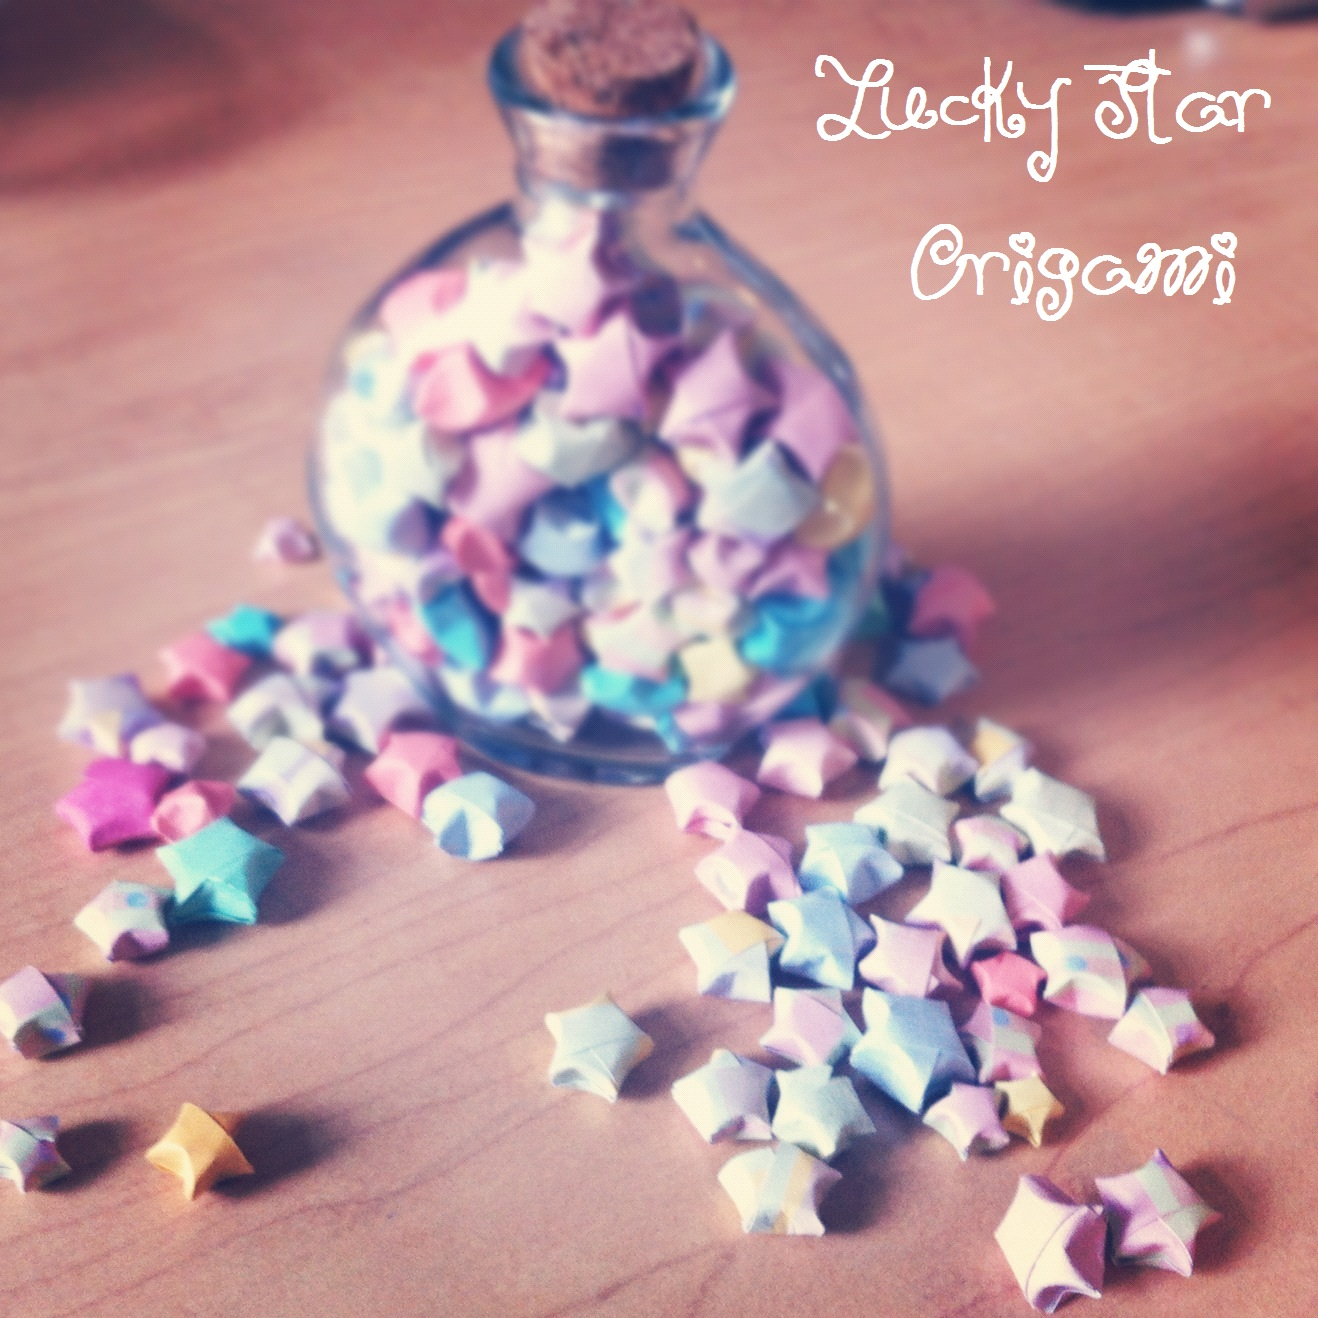 Lucky Star Origami Paper Meaning